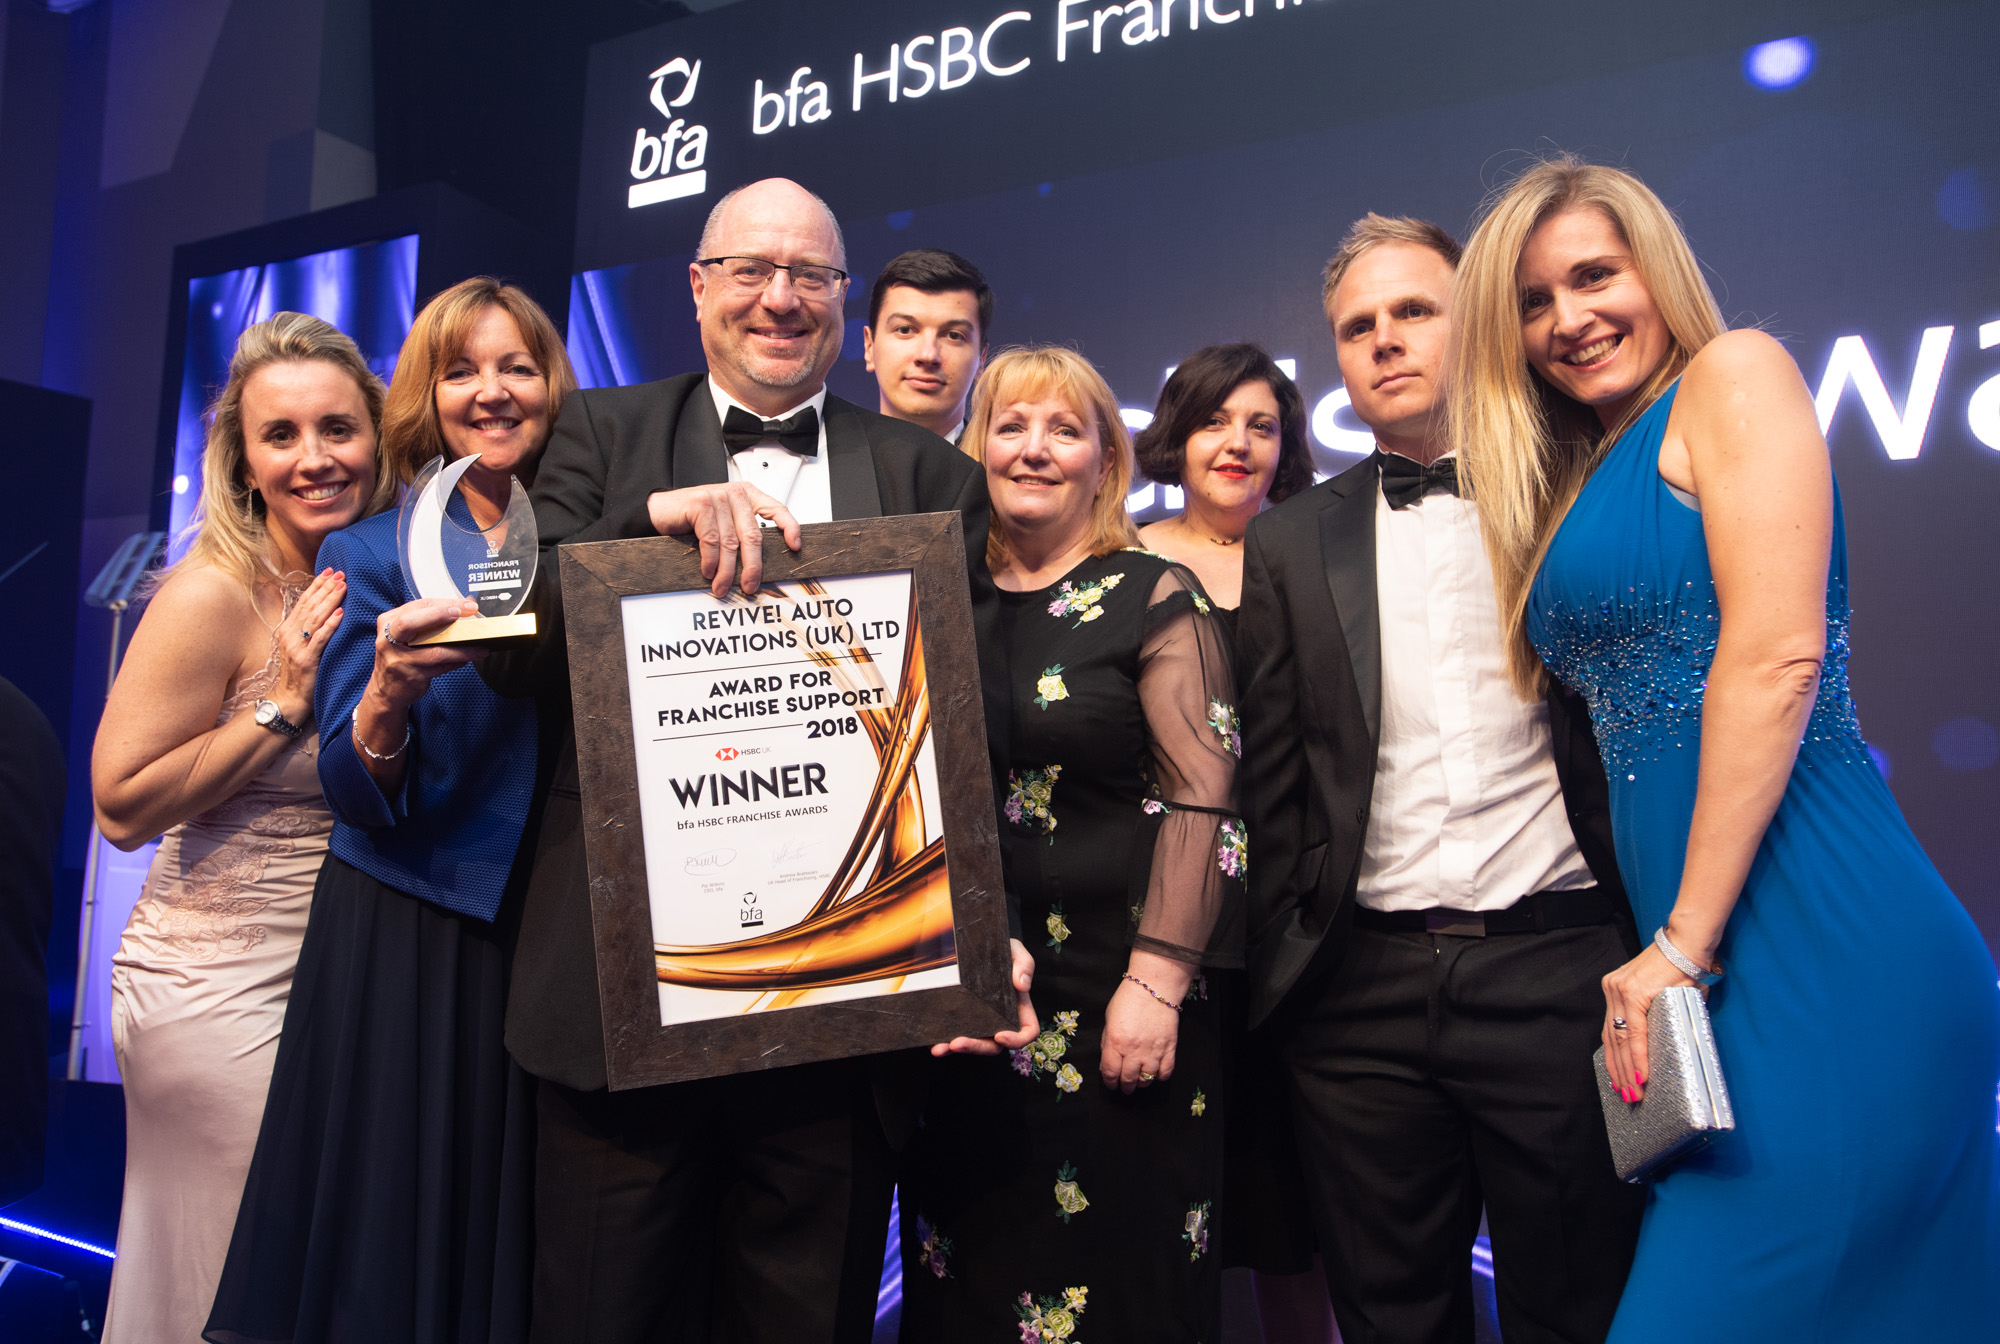 Revive! | bfa HSBC Franchise Award for Franchise Support